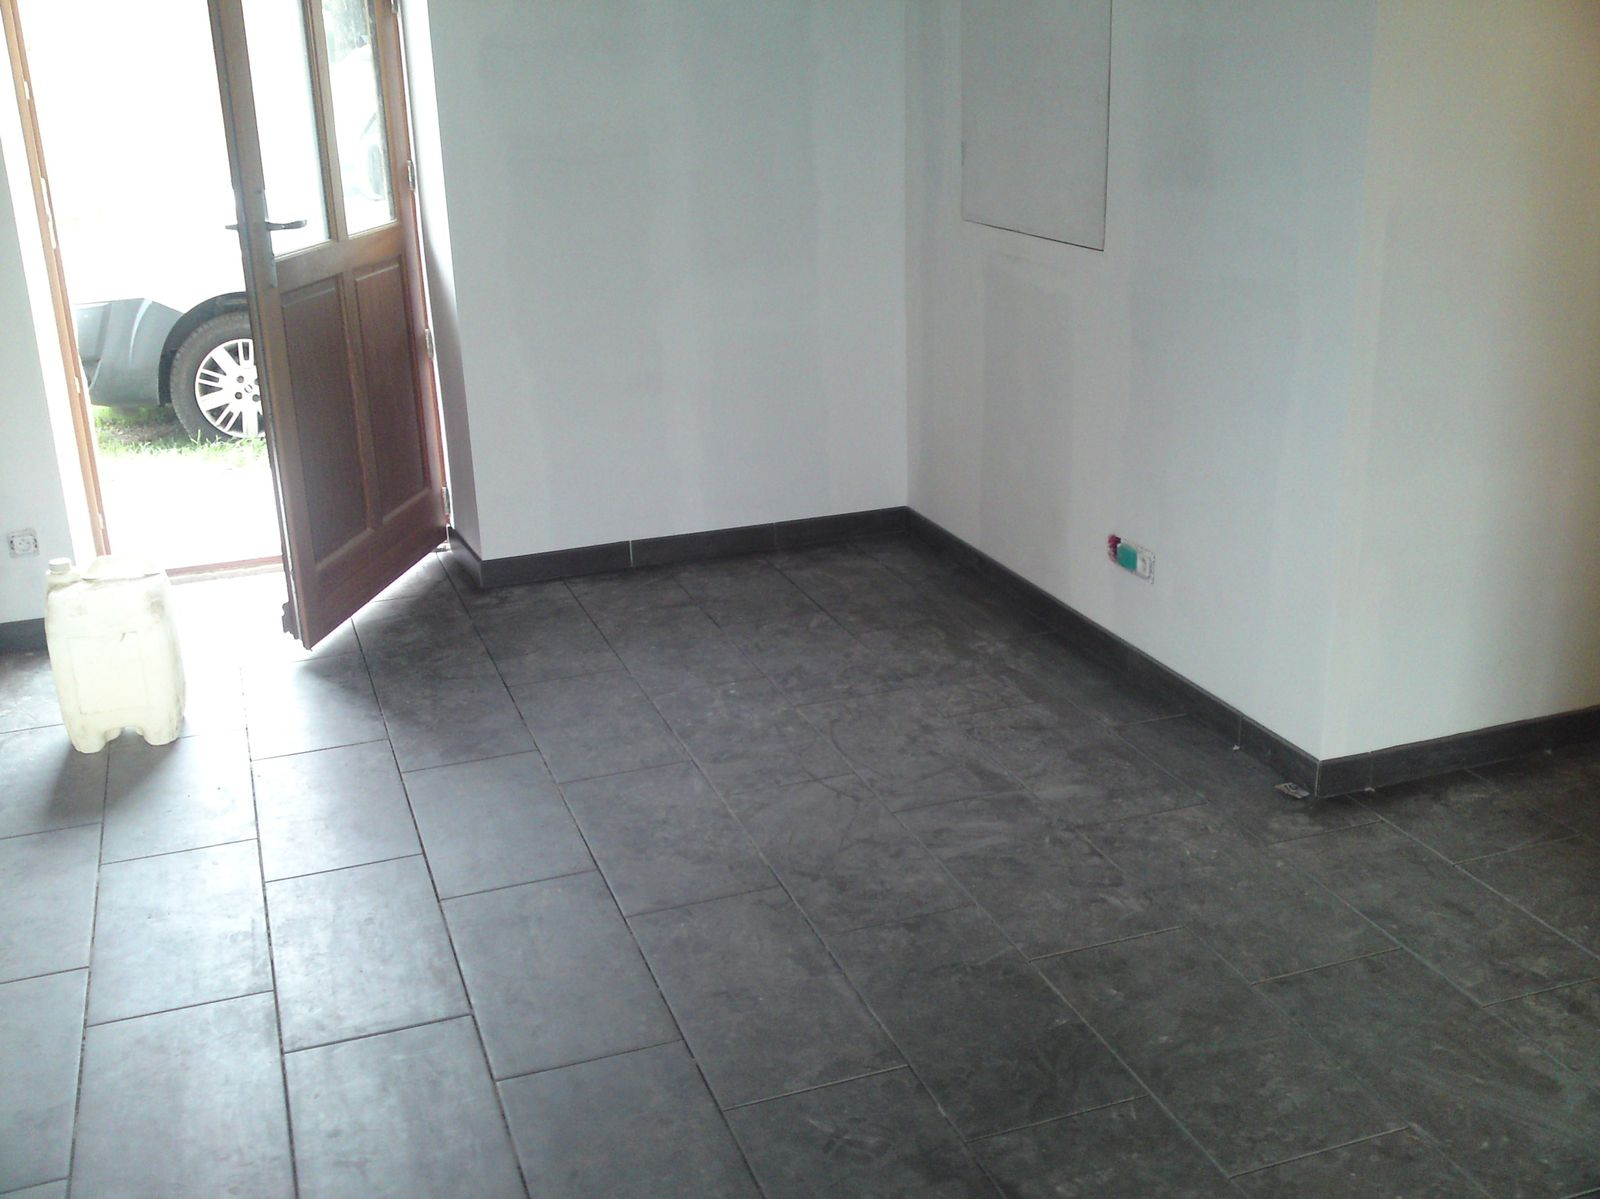 Pose des plinthes renovation d 39 une fermette en bourgogne for Pose de plinthe carrelage